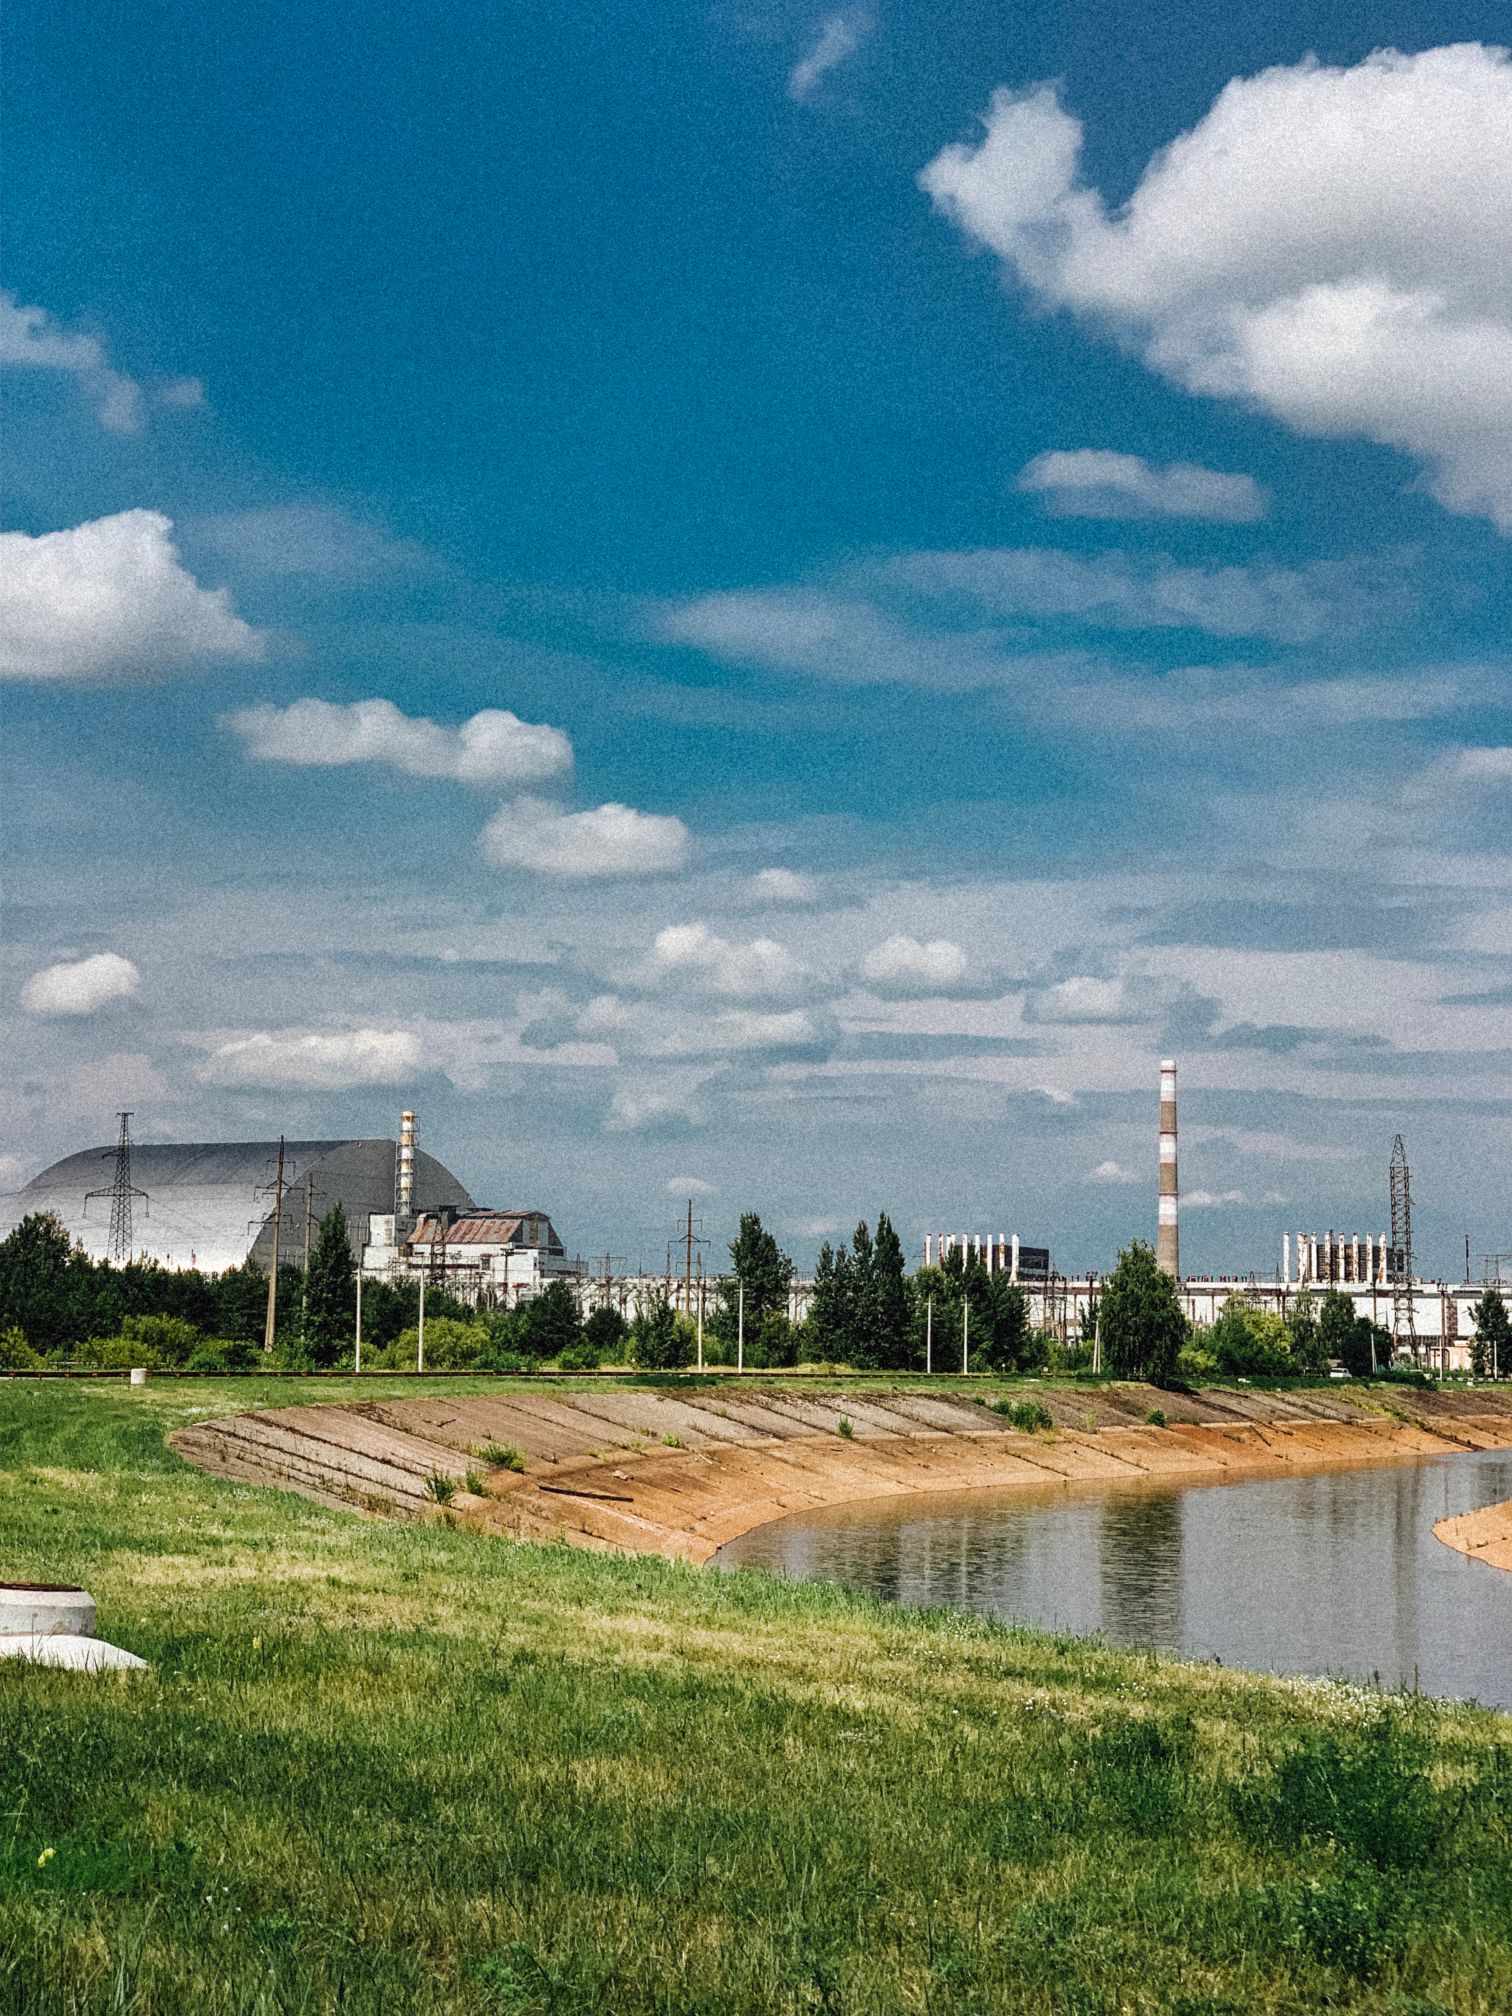 The Chernobyl Nuclear Power Plant in the Exclusion Zone